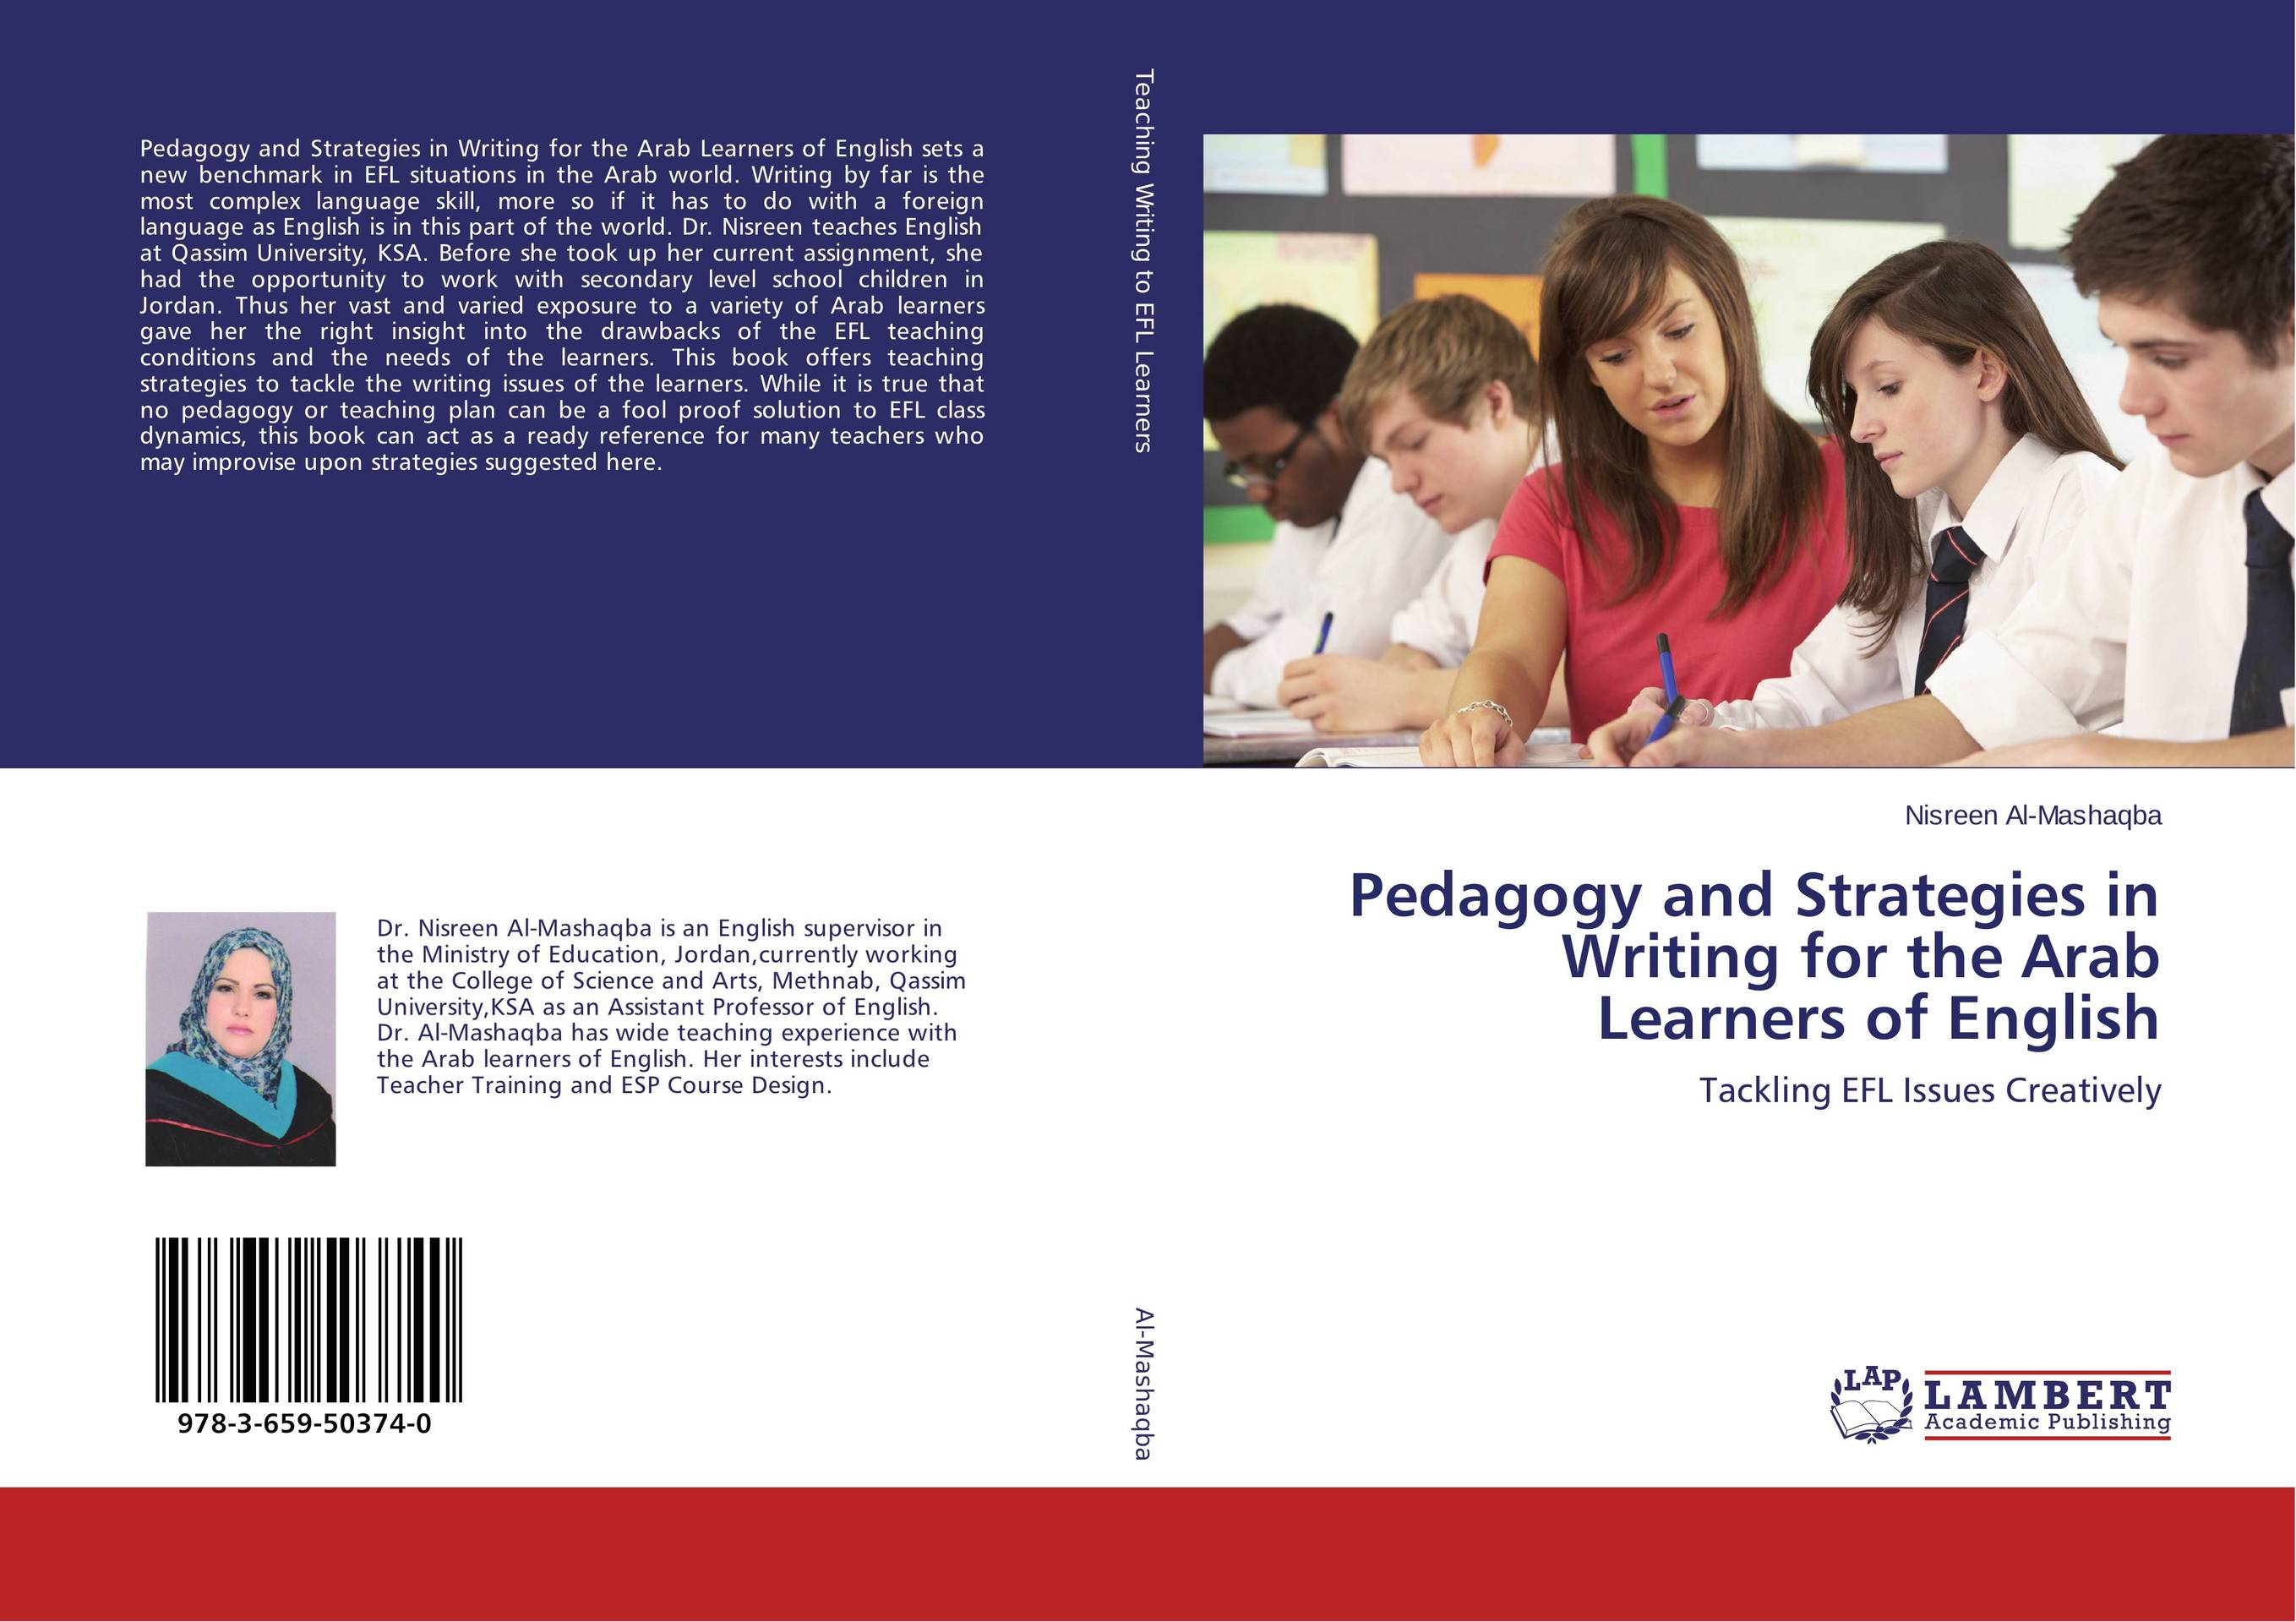 Pedagogy and Strategies in Writing for the Arab Learners of English the role of ict in the teaching of english as a foreign language efl